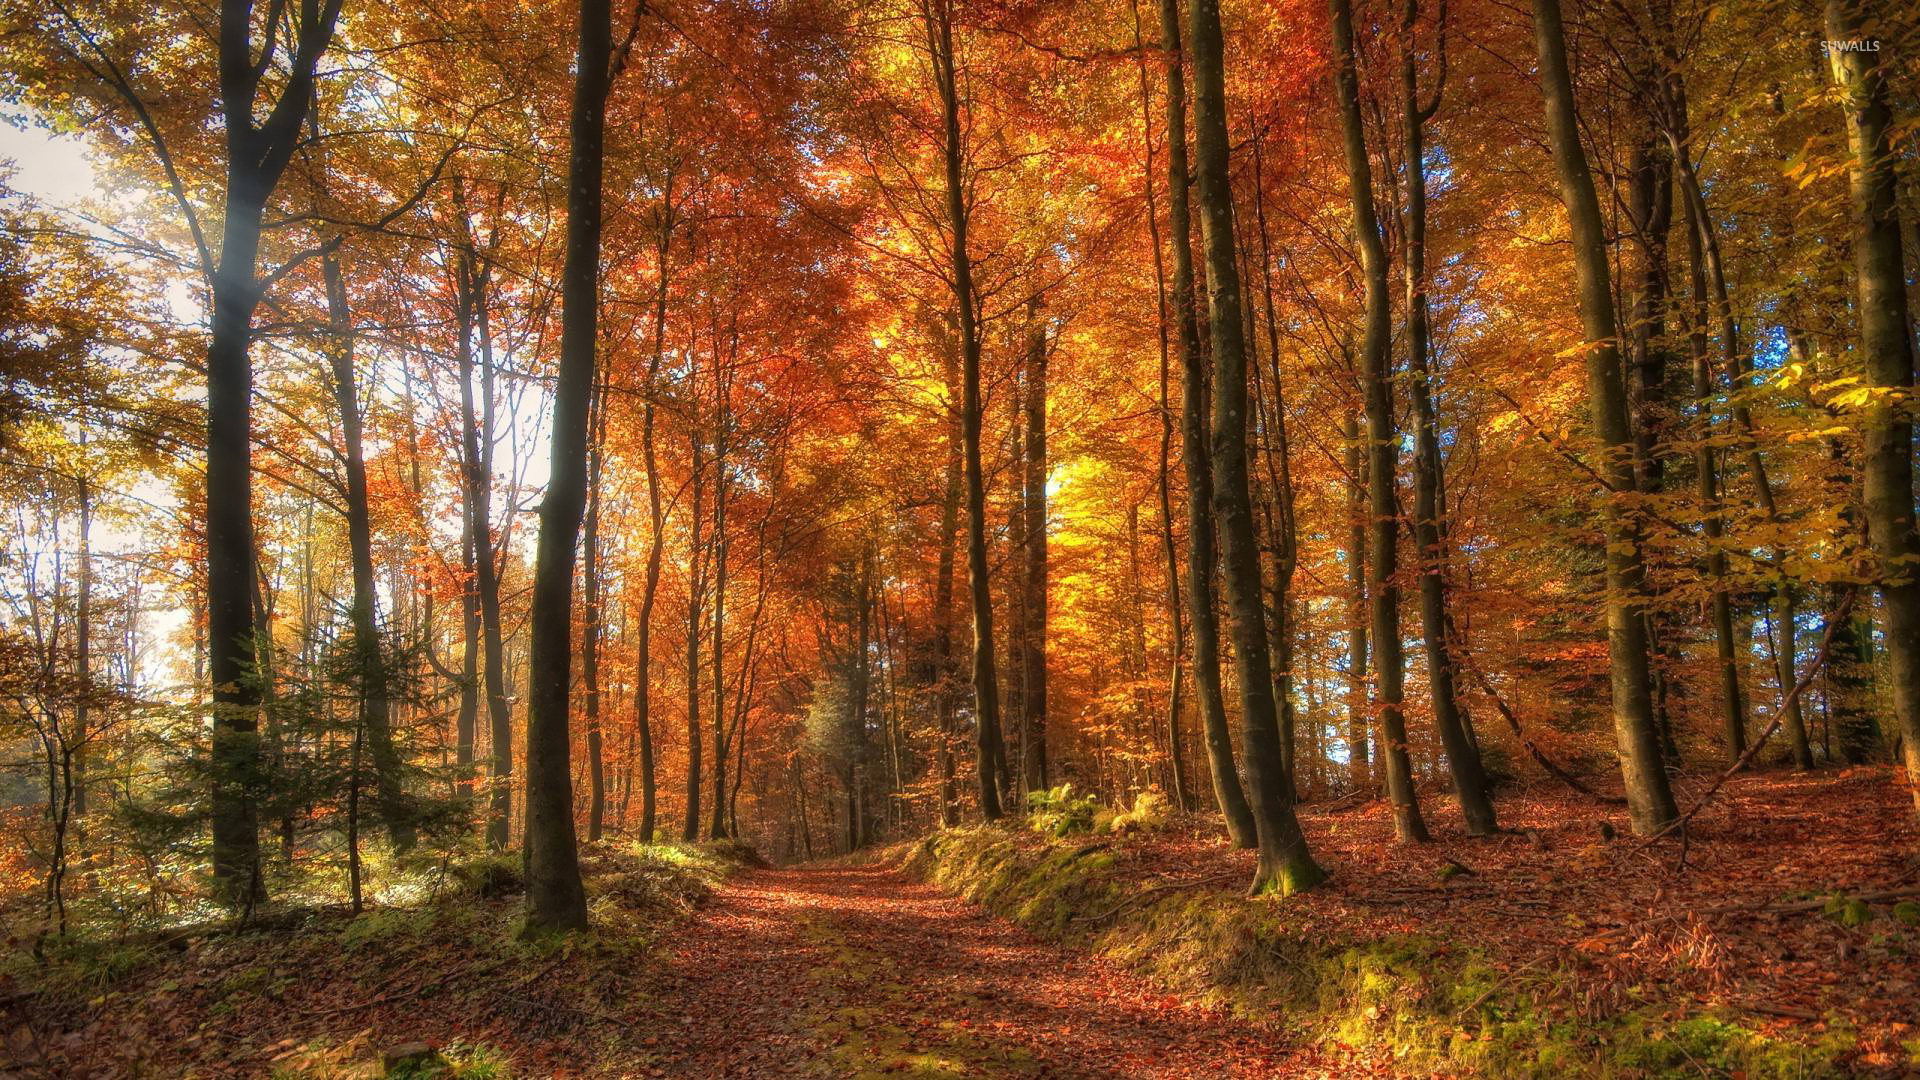 Free Fall Desktop Wallpaper Downloads Path In The Forest Wallpaper Nature Wallpapers 15174